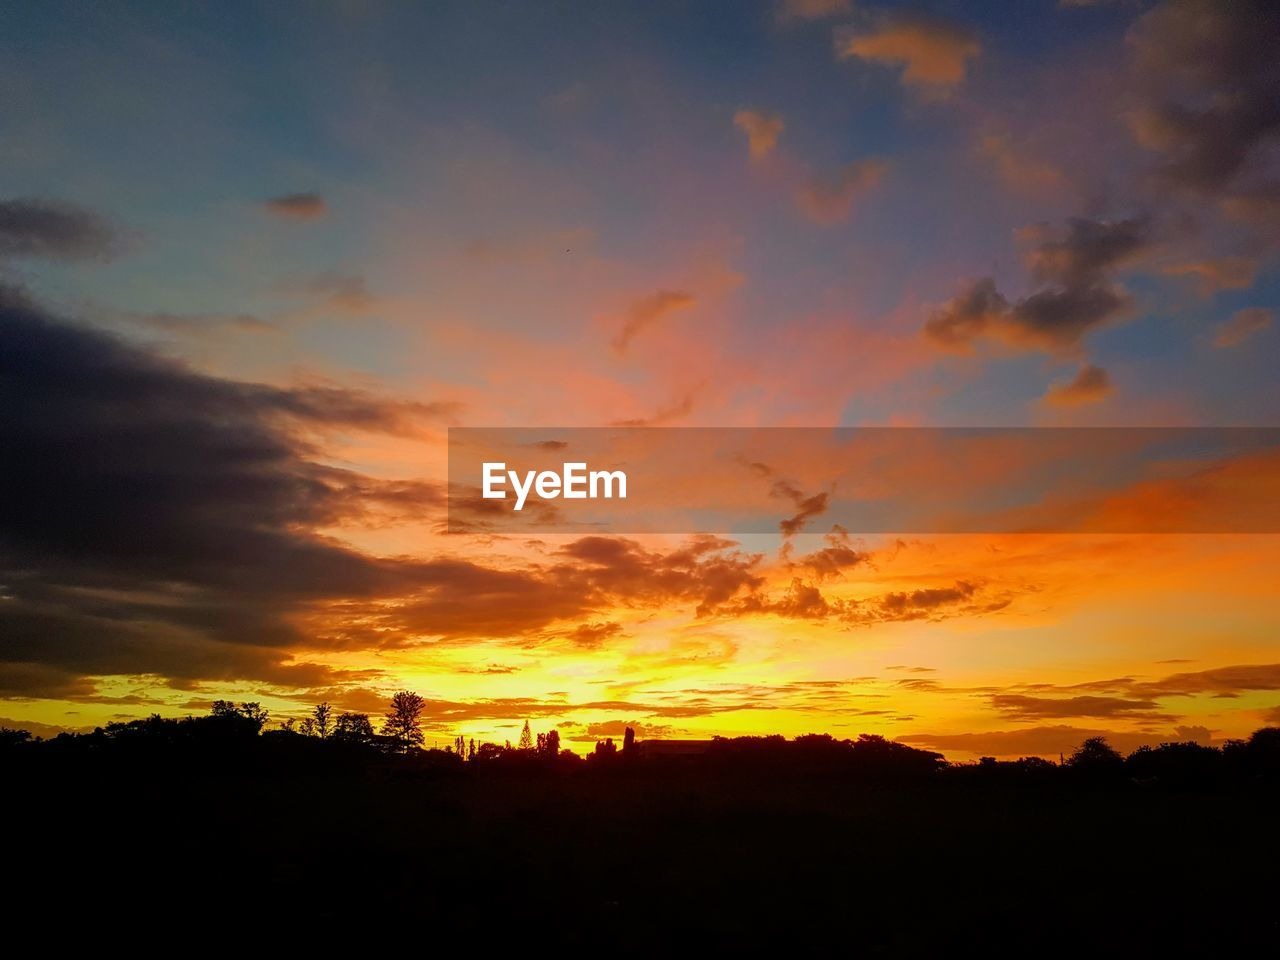 sunset, silhouette, orange color, sky, nature, dramatic sky, beauty in nature, no people, tranquil scene, scenics, tranquility, tree, outdoors